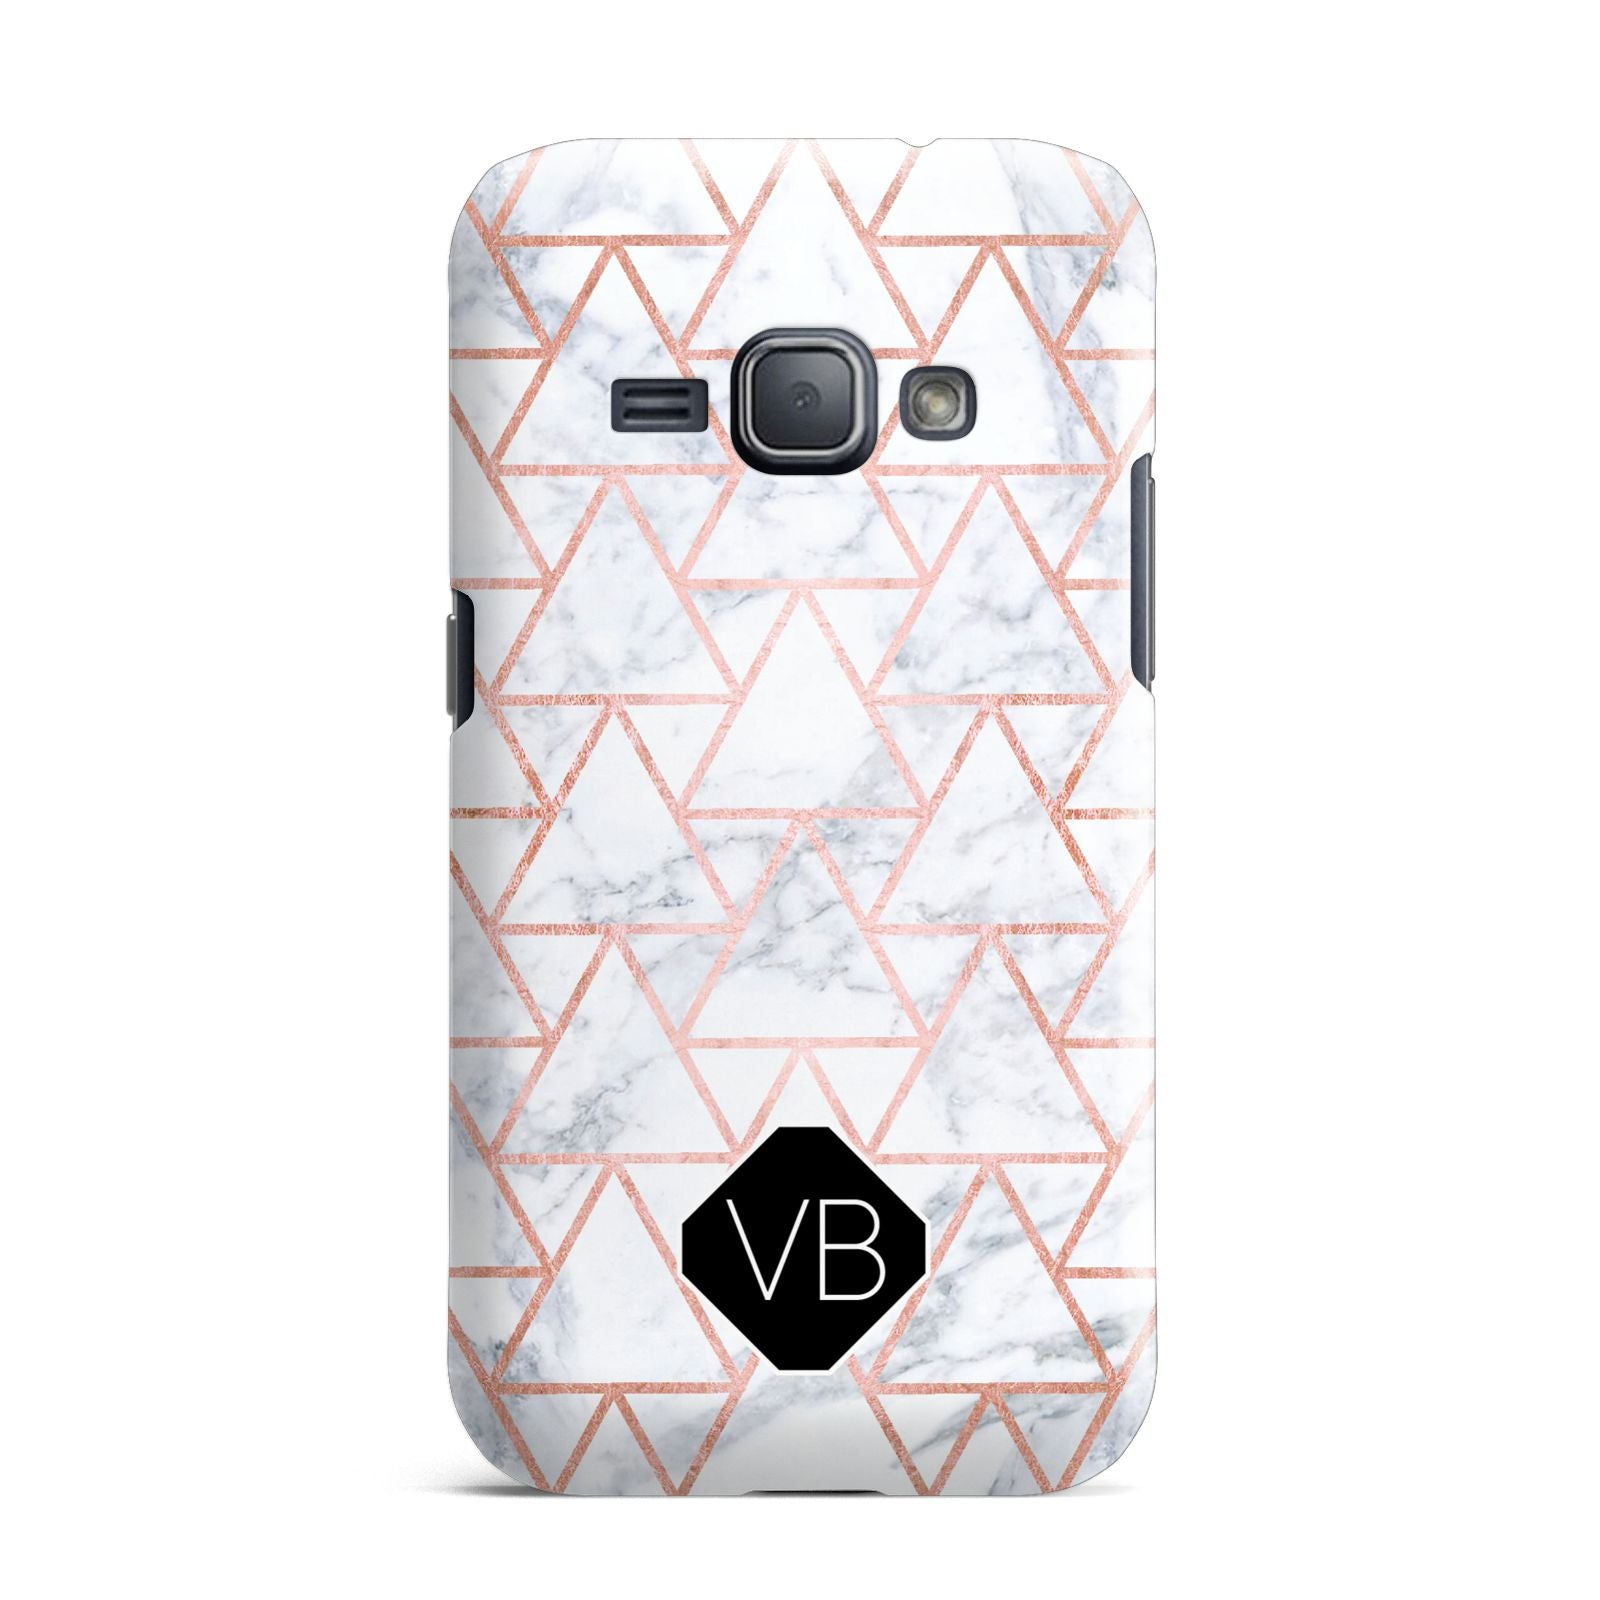 Personalised Rose Gold Grey Marble Hexagon Samsung Galaxy J1 2016 Case